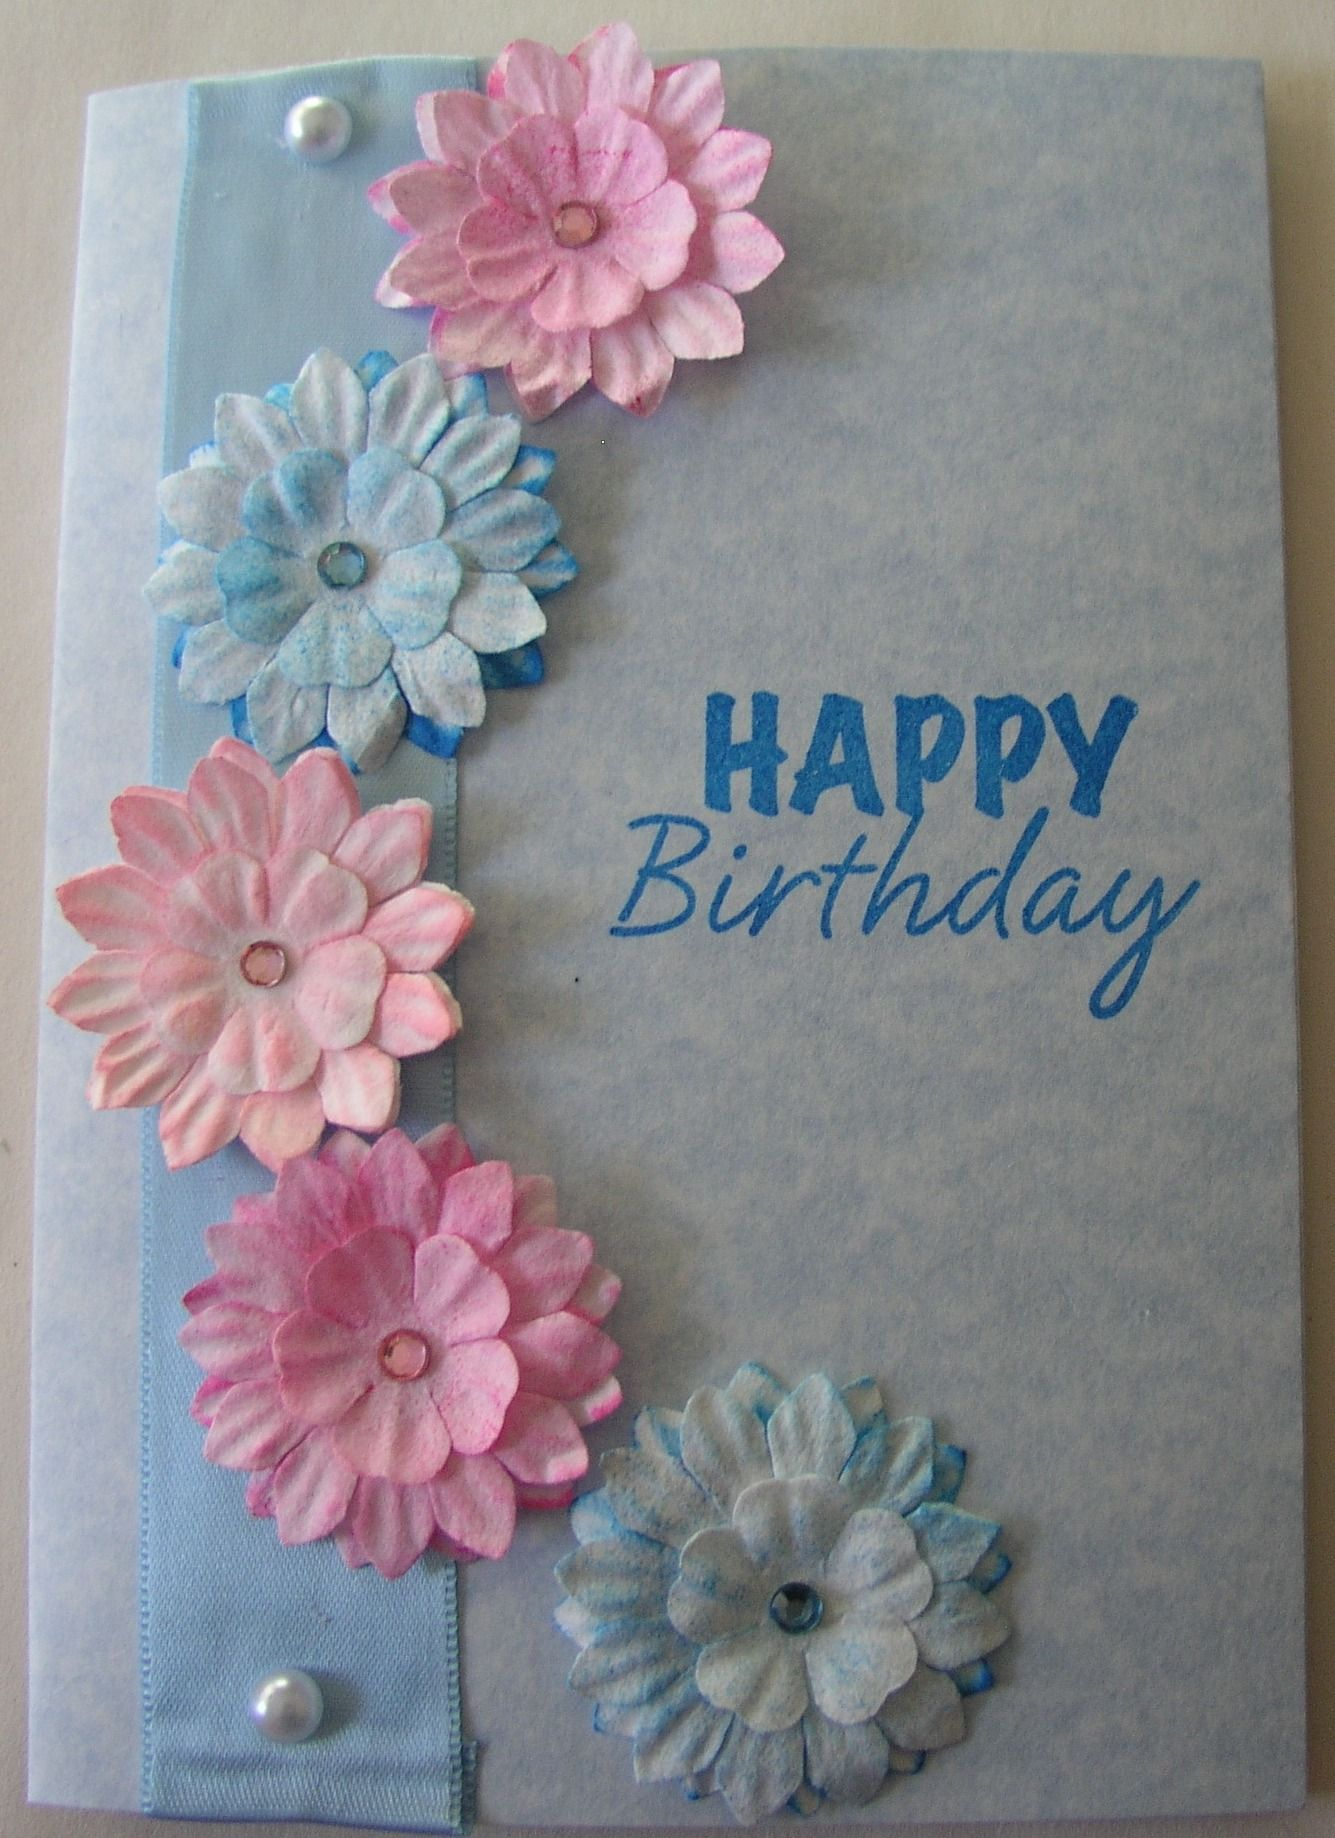 Homemade cards making your own greeting cards can be such a homemade cards making your own greeting cards can be such a rewarding hobby it kristyandbryce Image collections